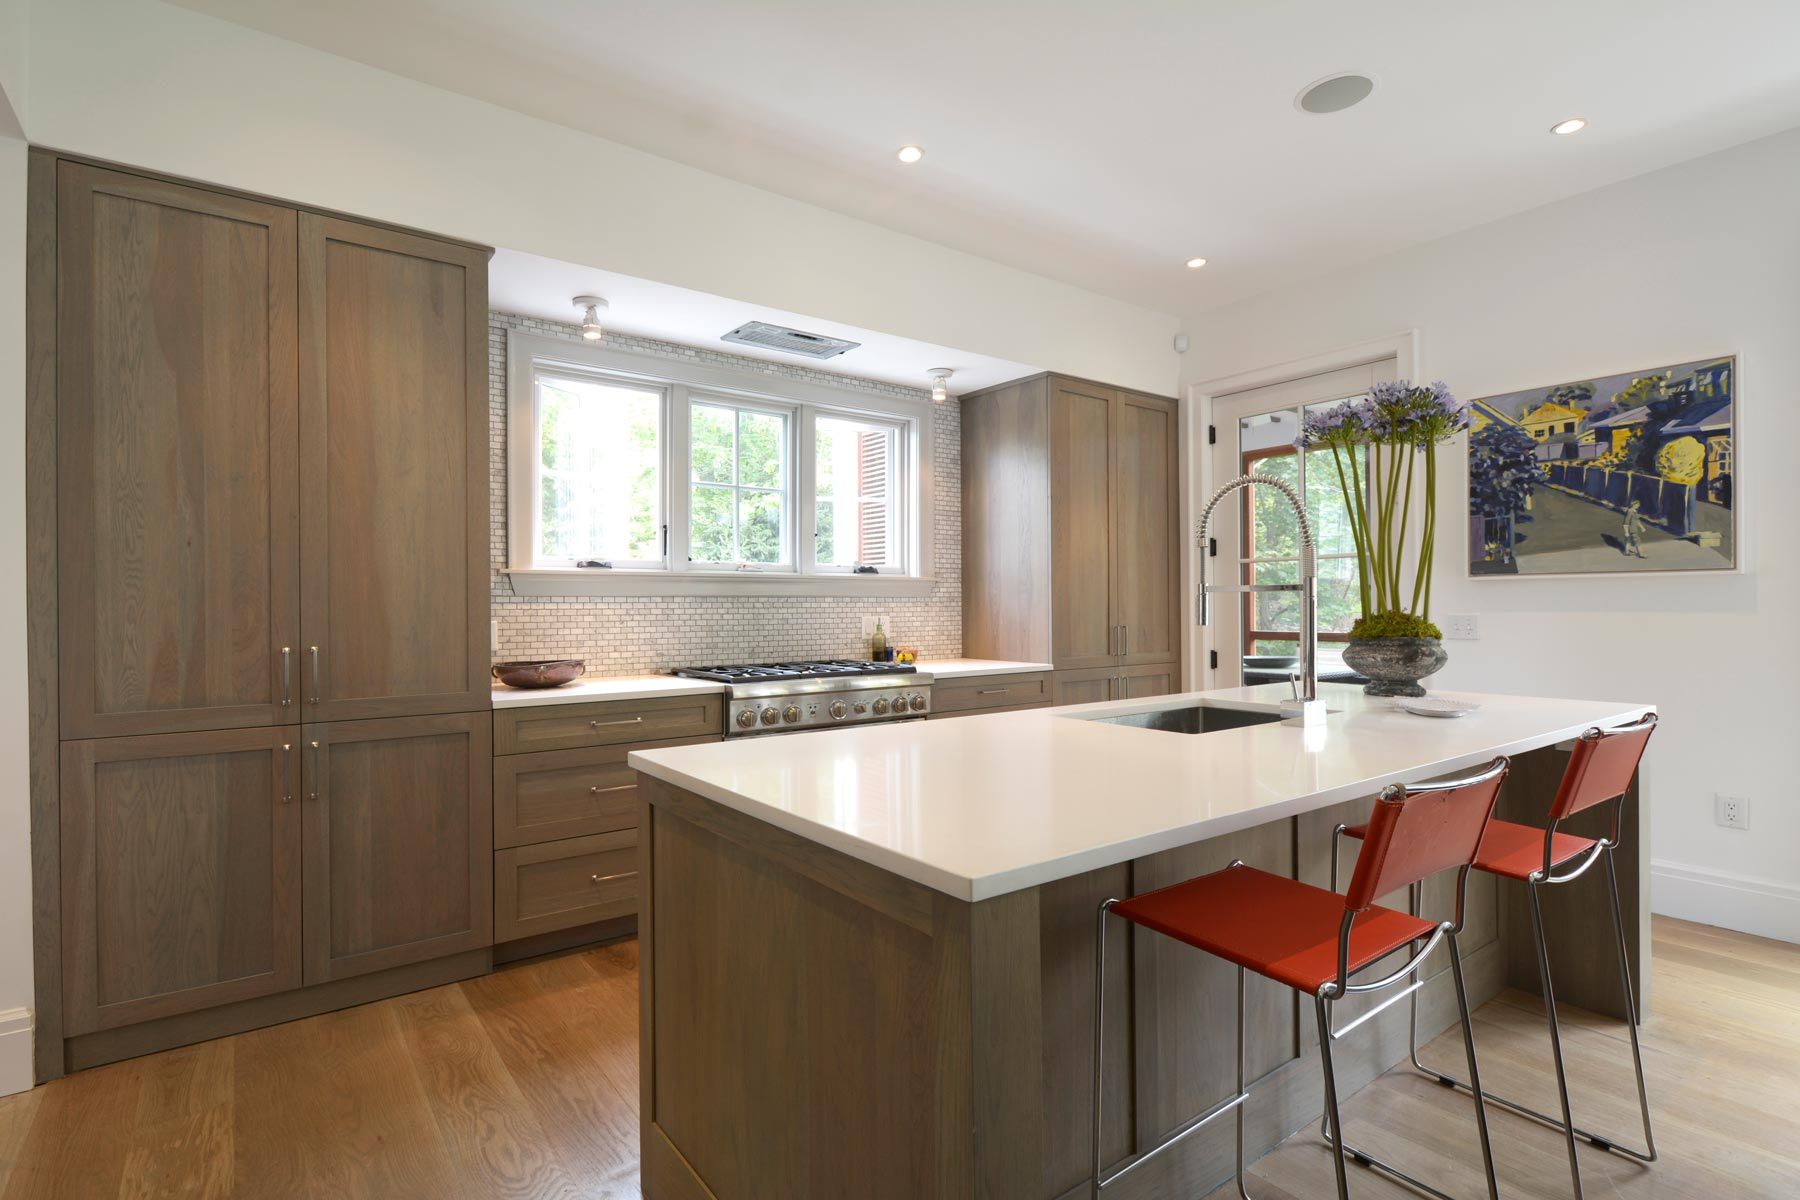 Hampton Design - Hamptons kitchen design